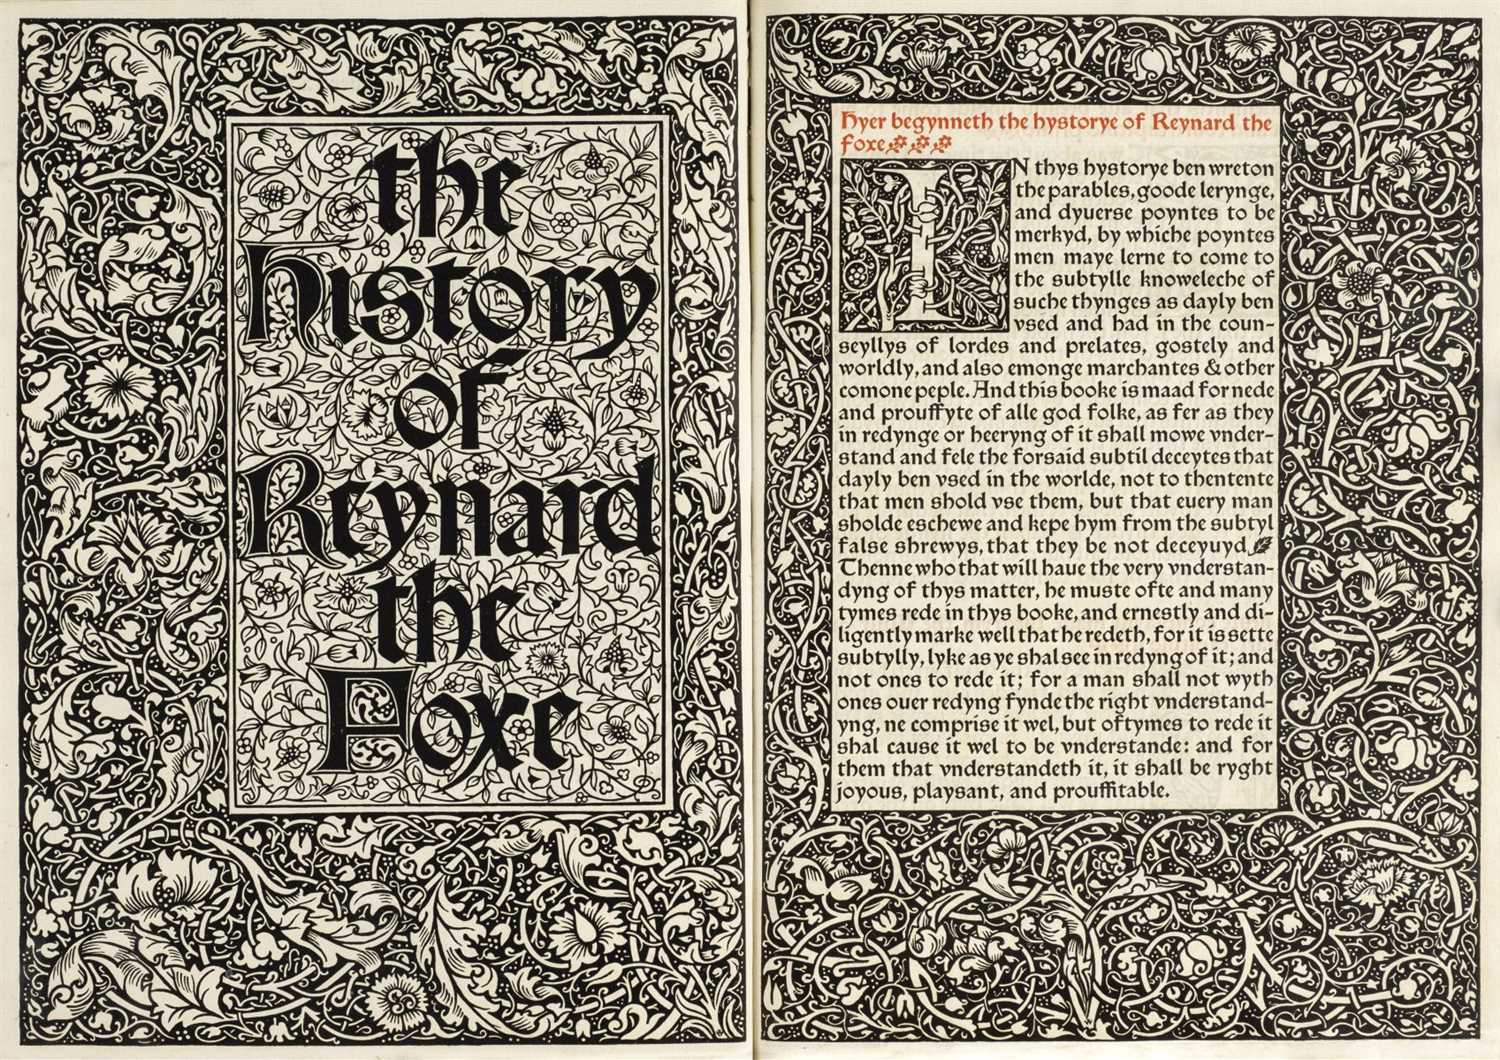 402 - Kelmscott Press. The History of Reynard the Foxe, by William Caxton, Printed by William Morris, 1892